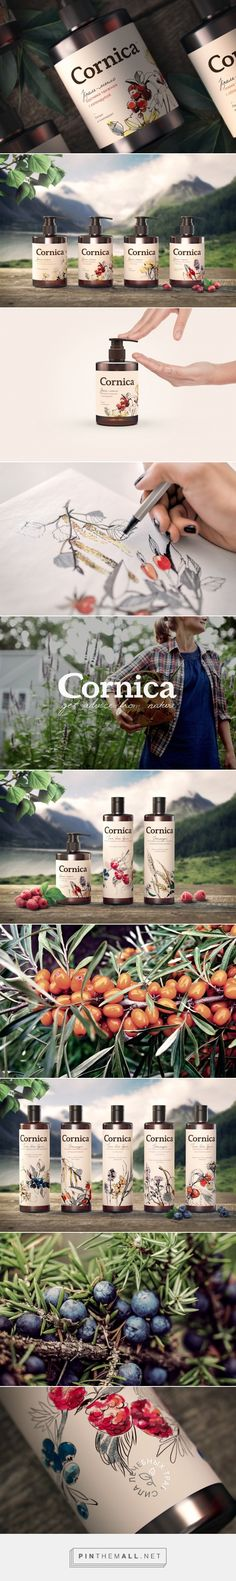 Natural Cosmetic Cornica -  Packaging of the World - Creative Package Design Gallery - http://www.packagingoftheworld.com/2016/04/natural-cosmetic-cor... - a grouped images picture